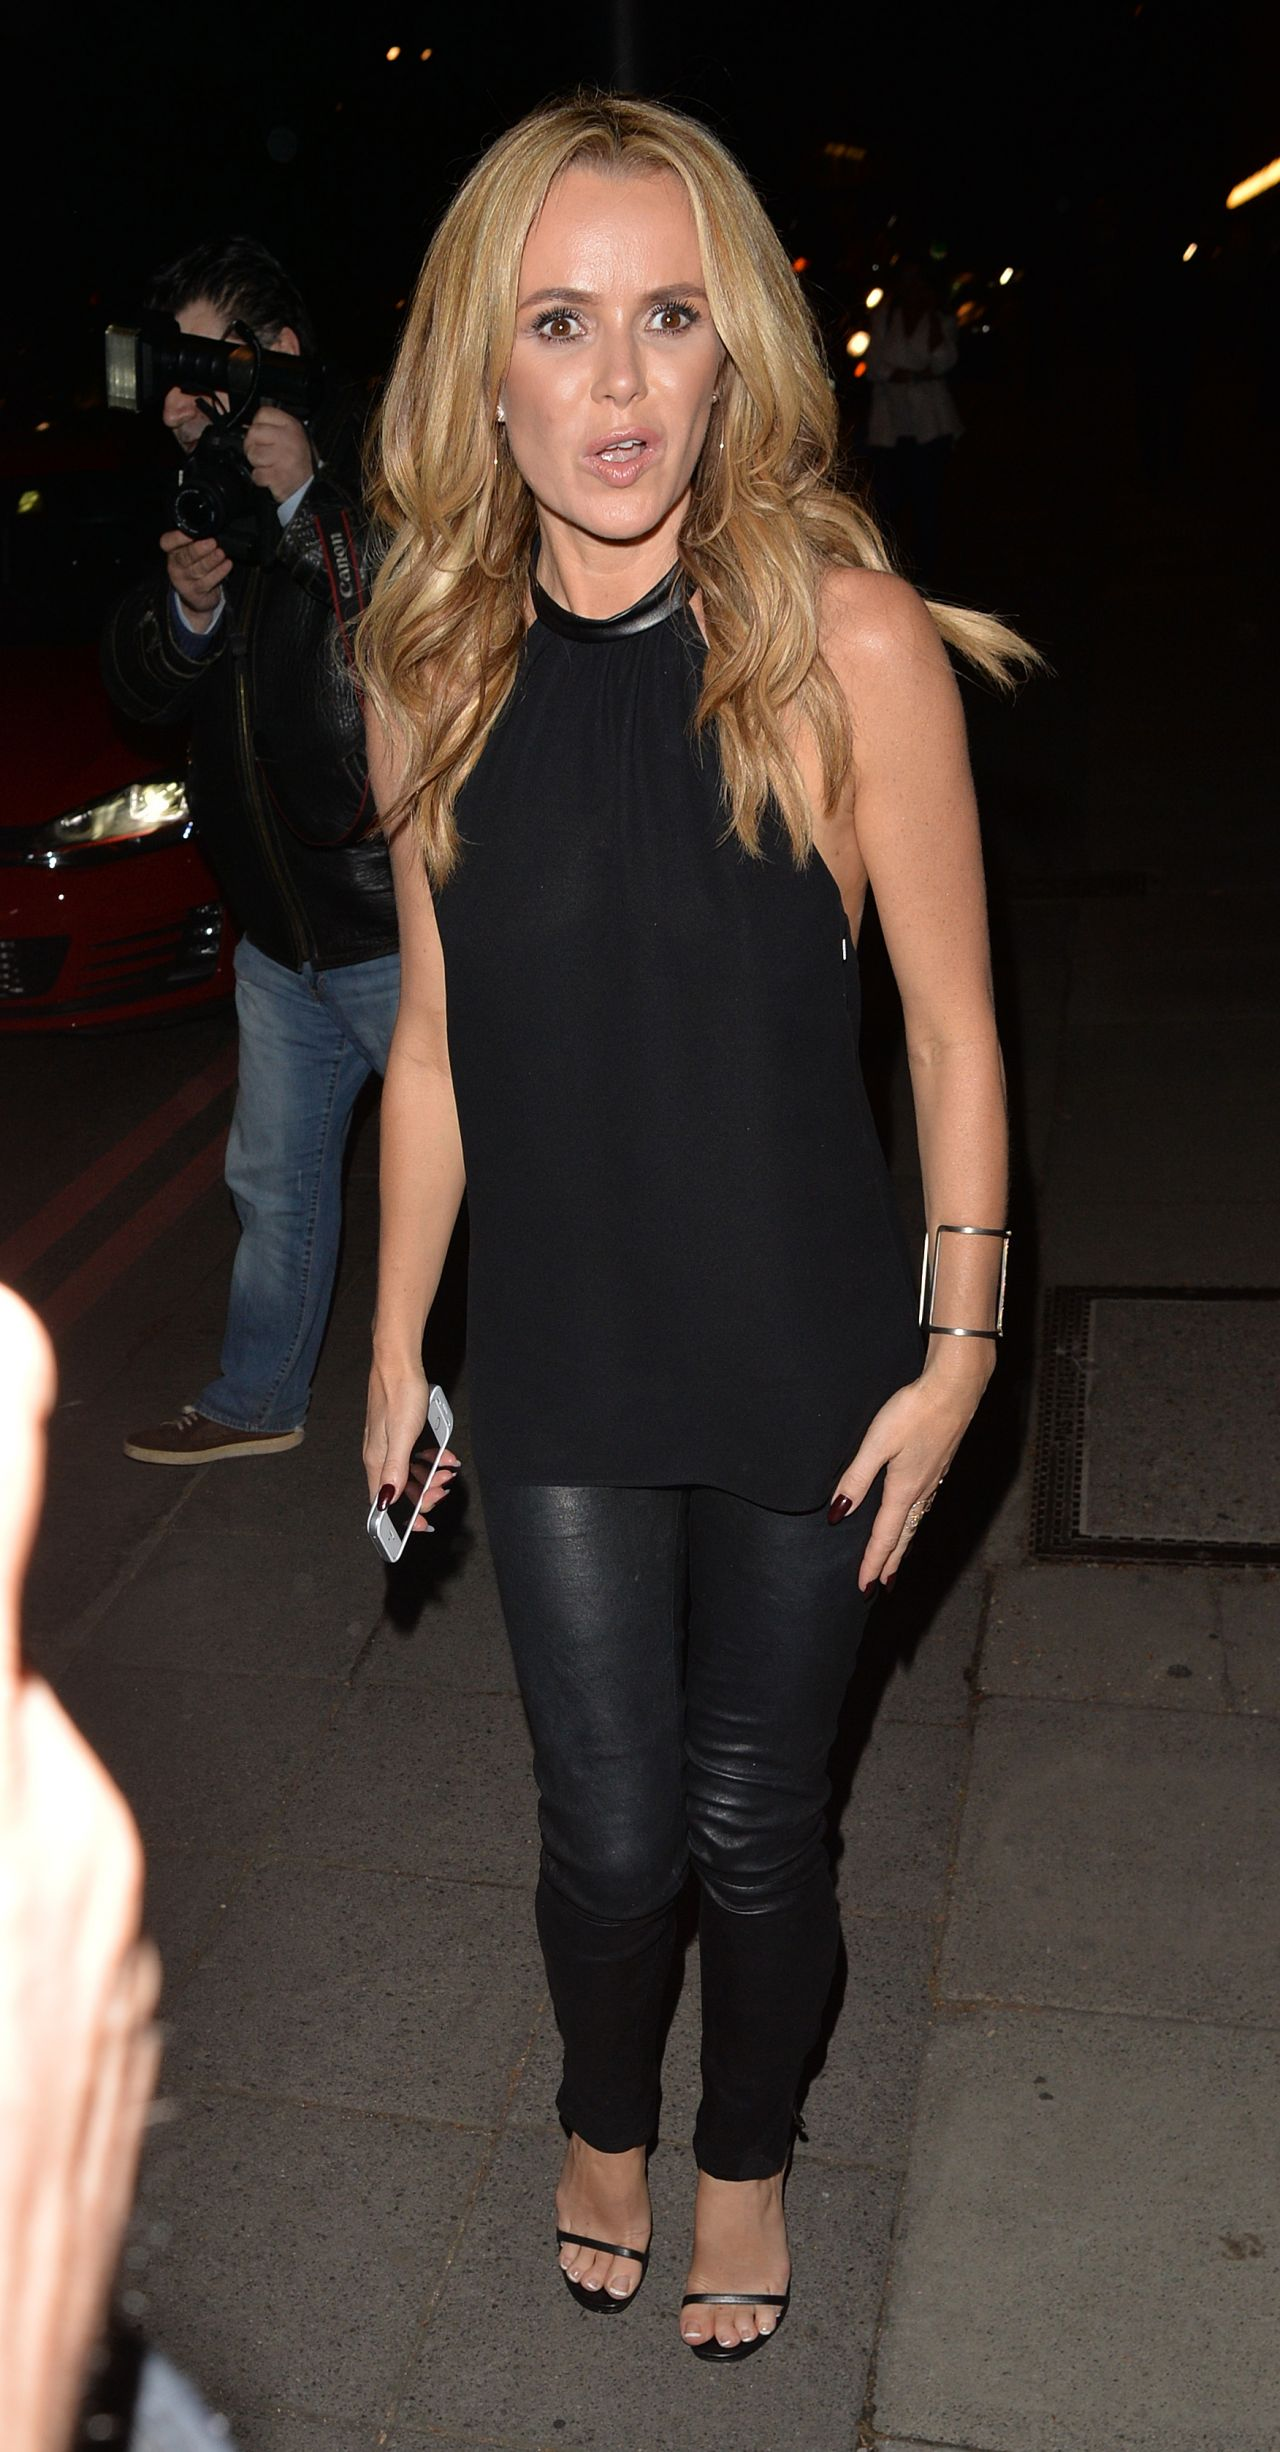 Amanda Holden Night Out Style Arriving At The Red Bar In